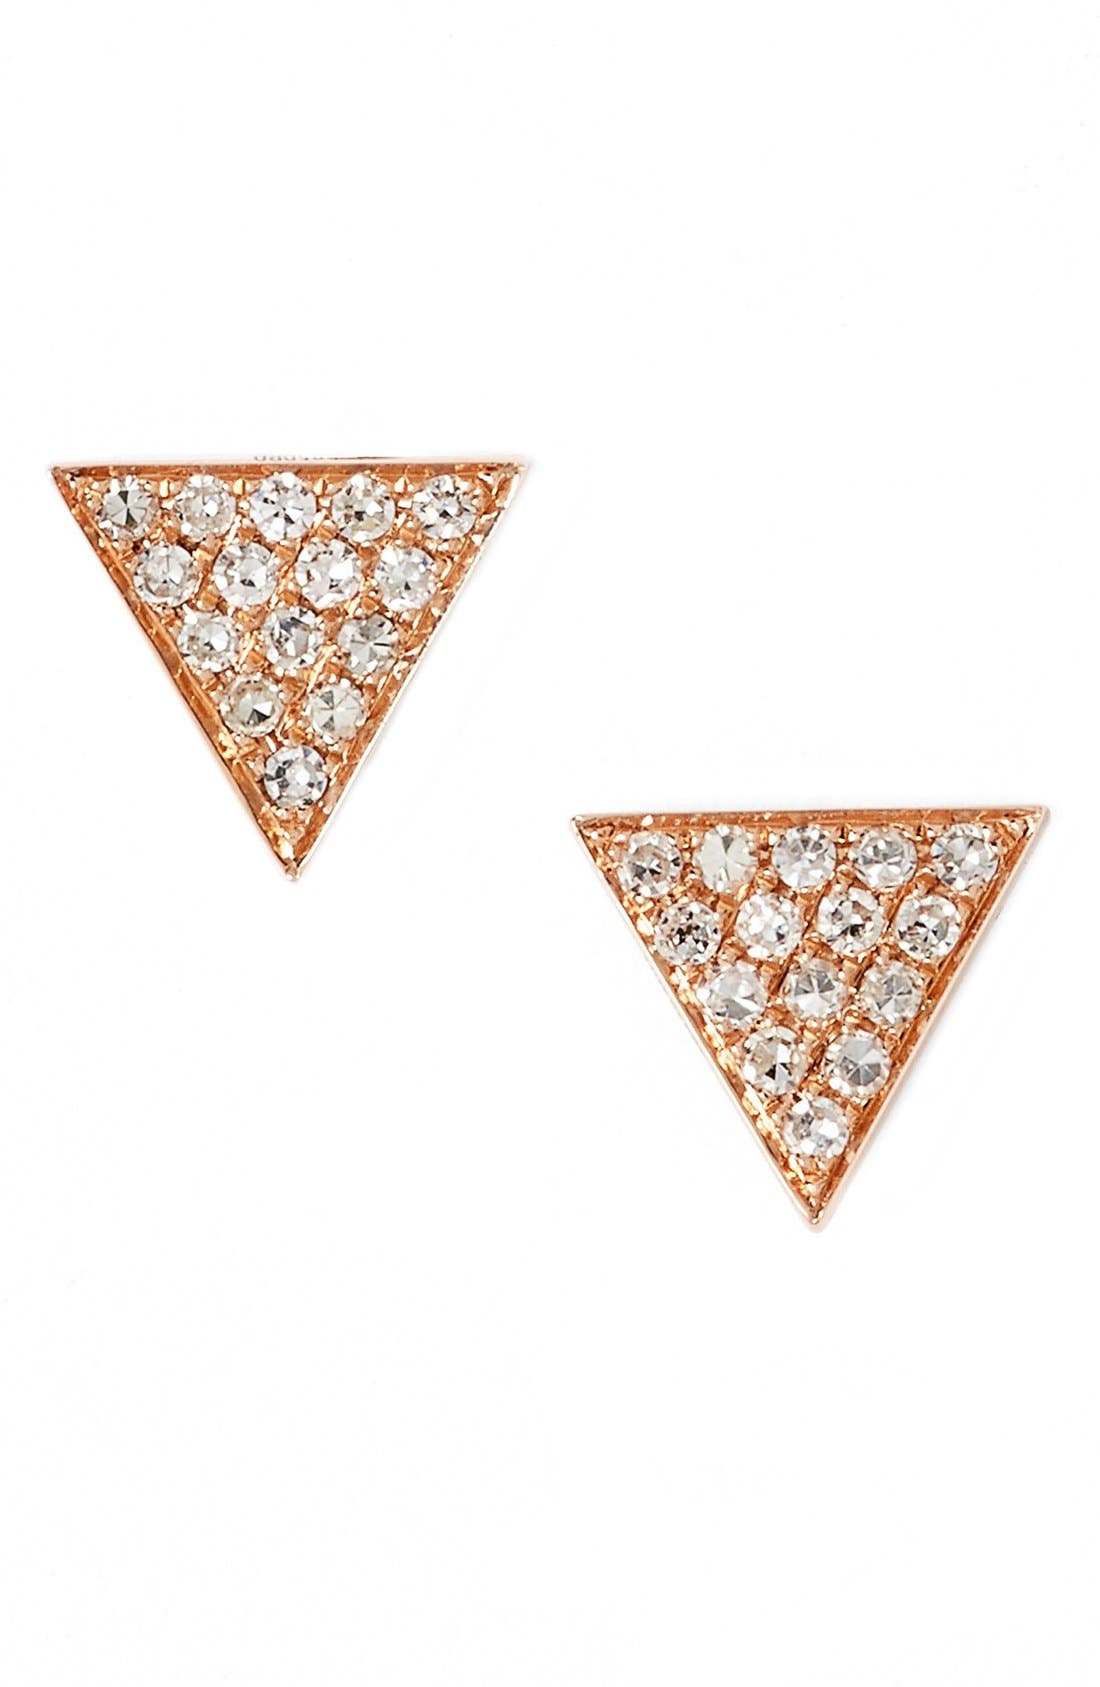 Dana Rebecca Designs 'Emily Sarah' Diamond Pavé Triangle Stud Earrings (Nordstrom Exclusive)